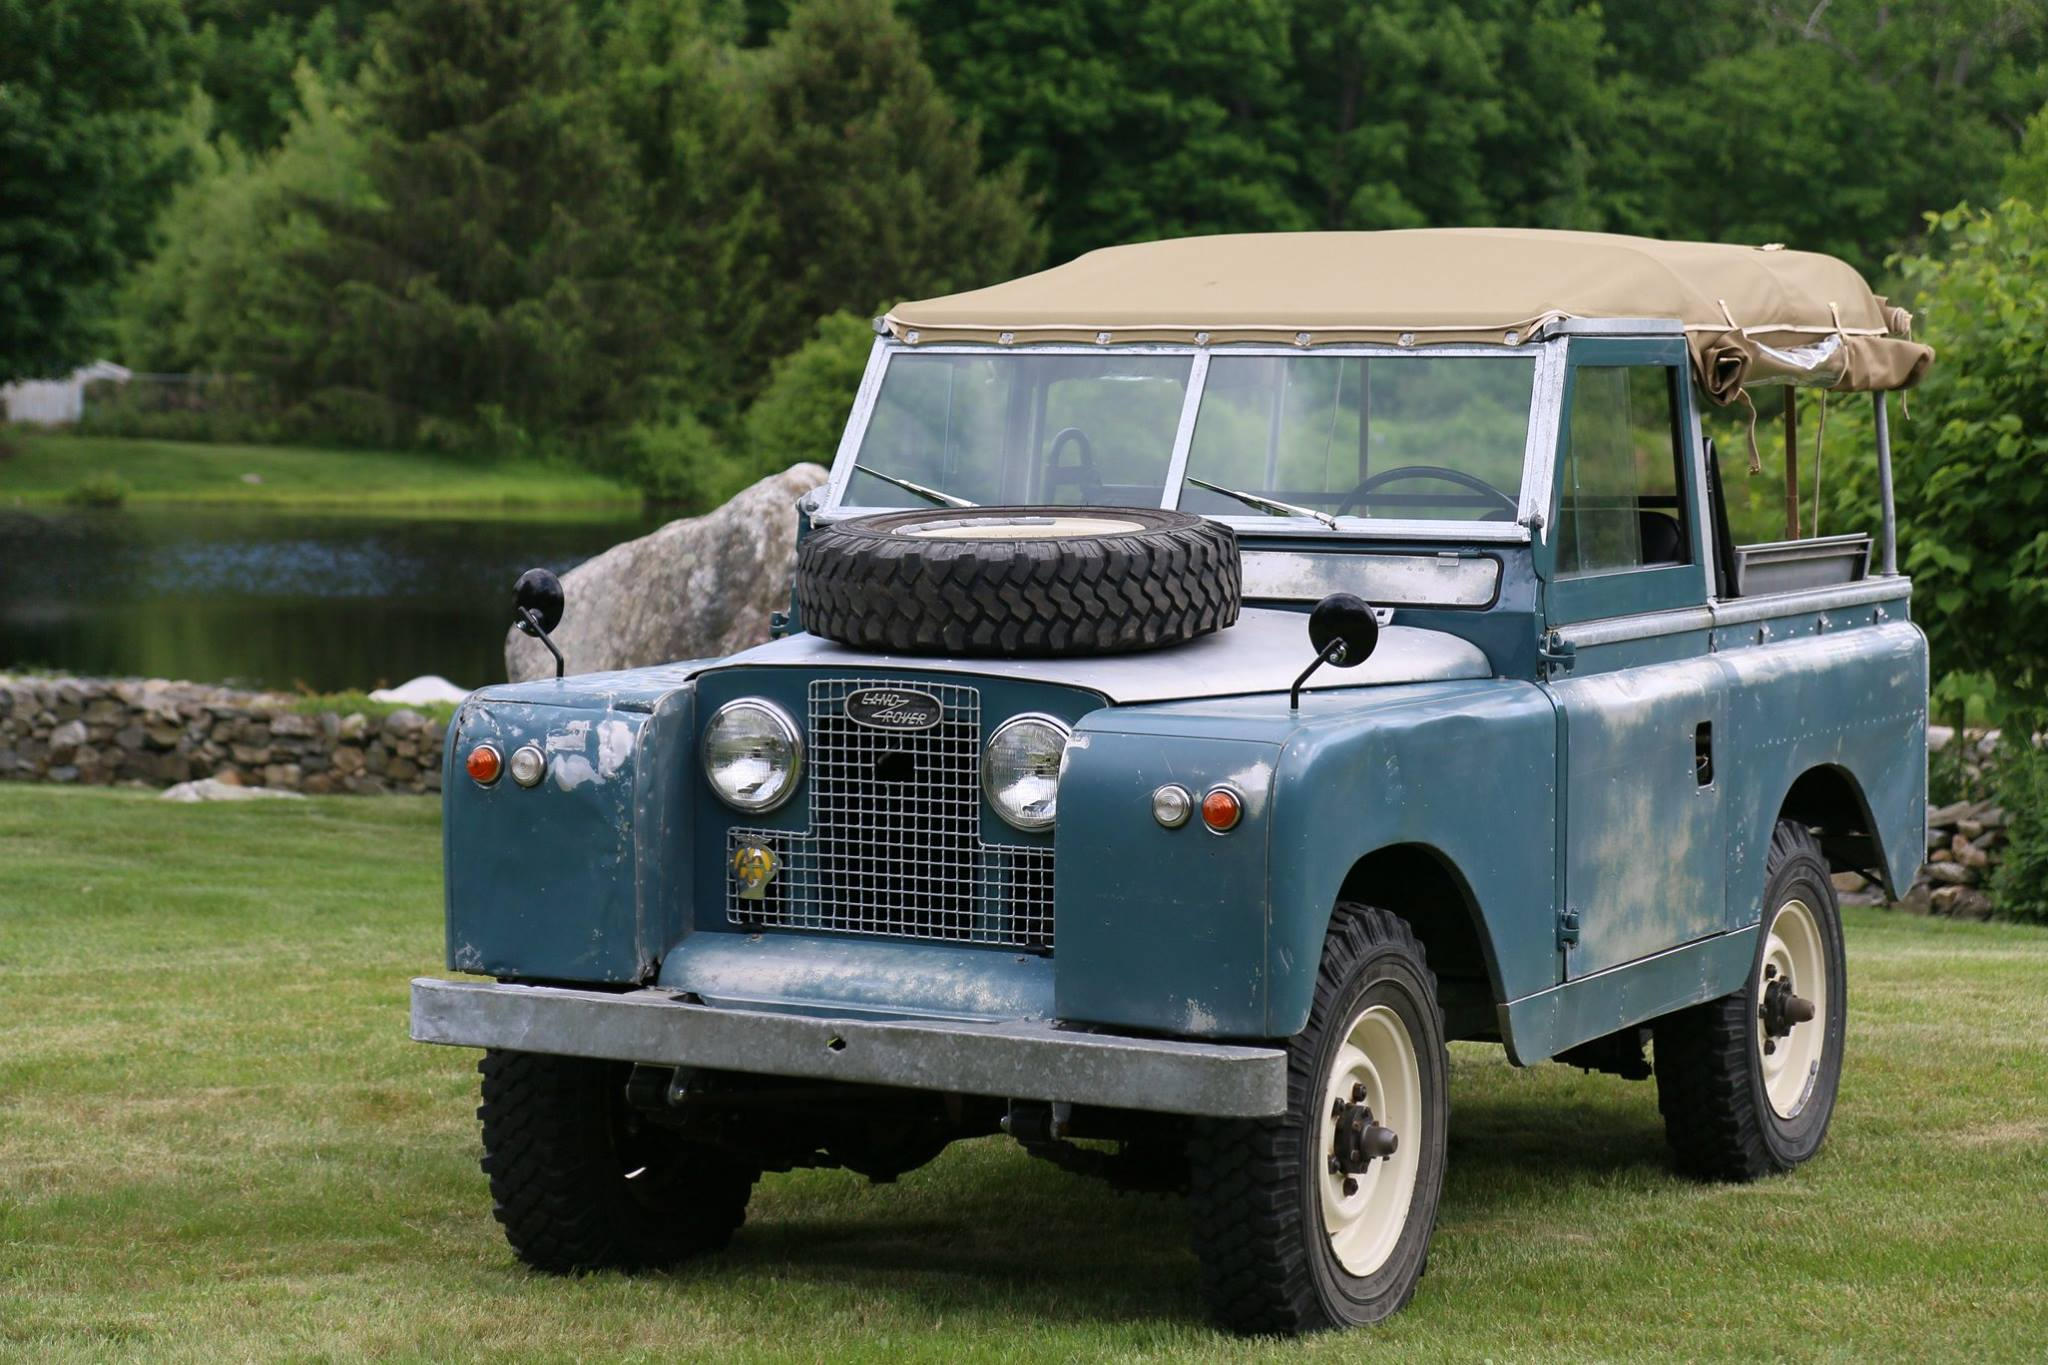 1962 Land Rover Series IIa Marine Blue Patina